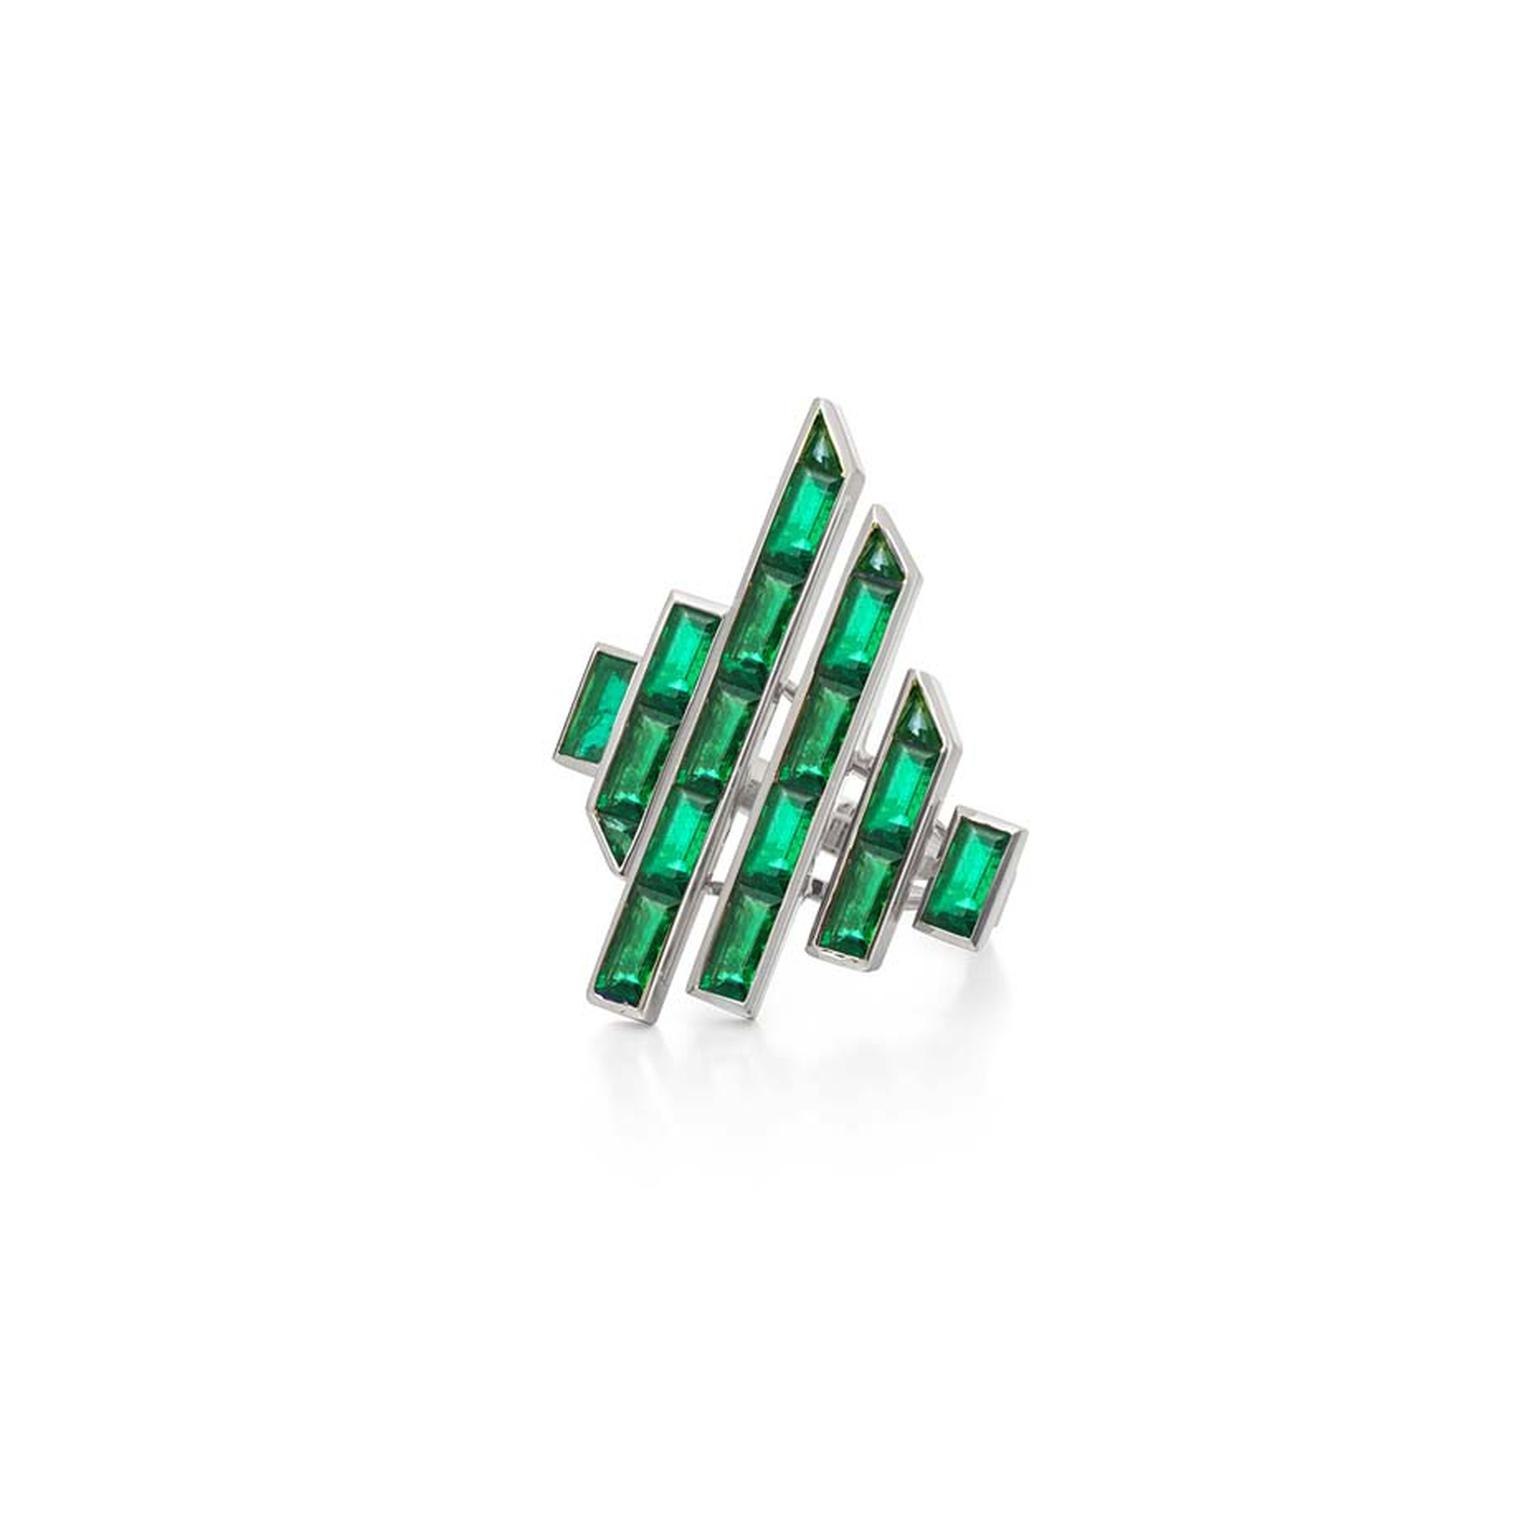 Art deco style Tomasz Donocik emerald ring, from the new Electric Night collection.